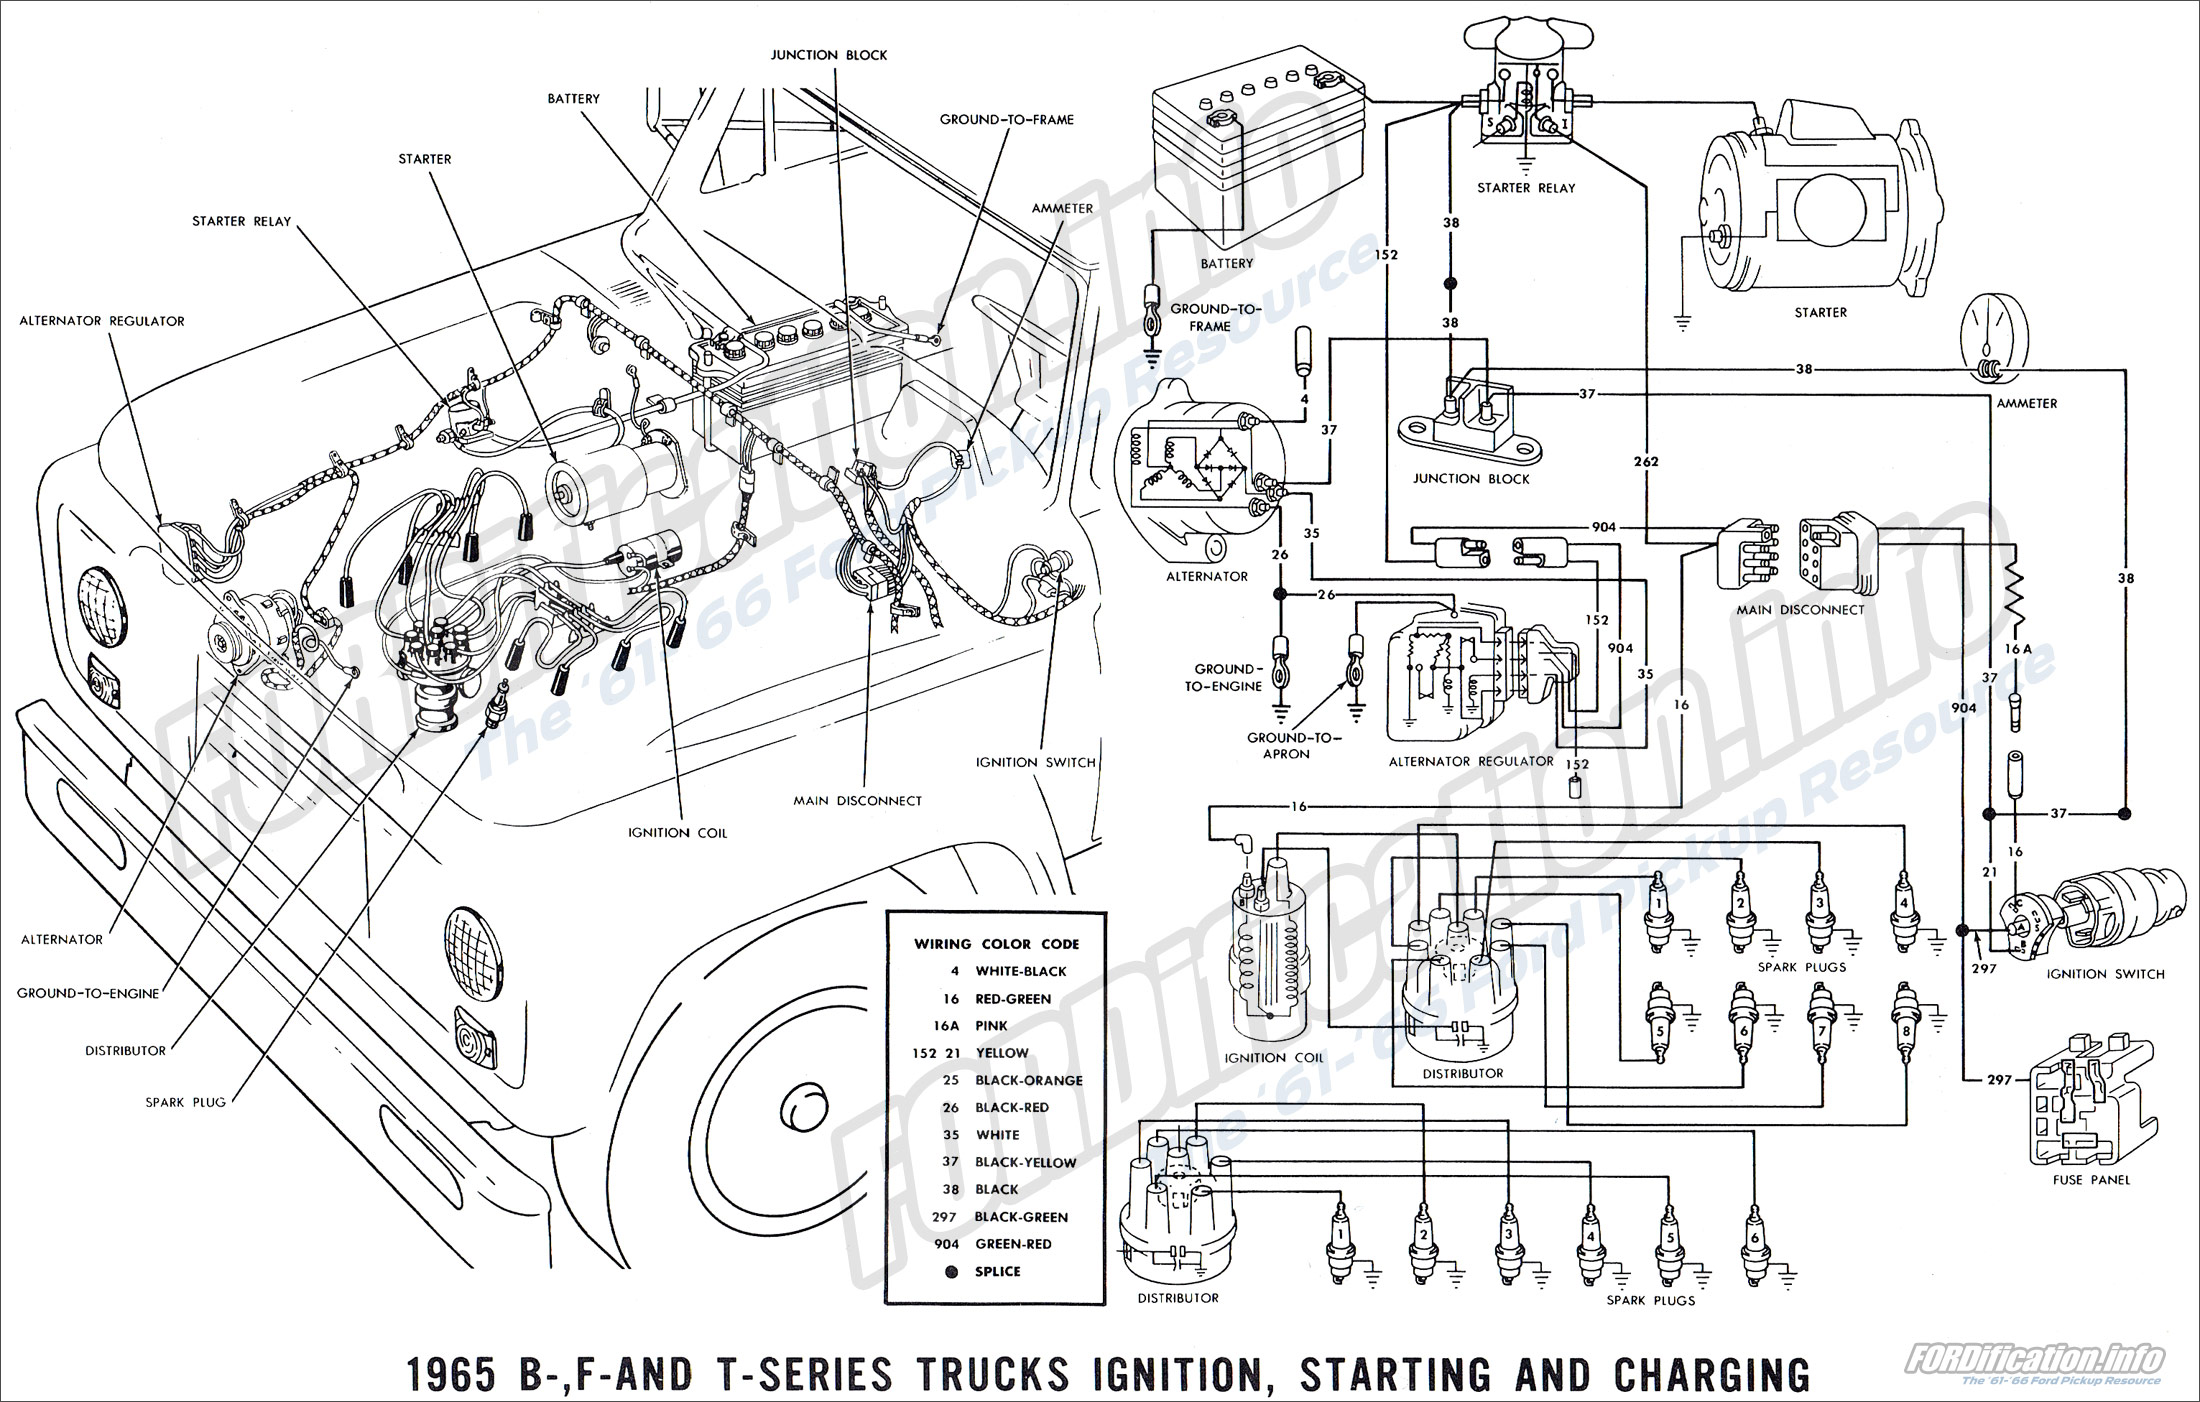 1975 f100 wiring diagrams 65 ford f100 wiring diagrams truck 1965 ford truck wiring diagrams - fordification.info - the ... #15